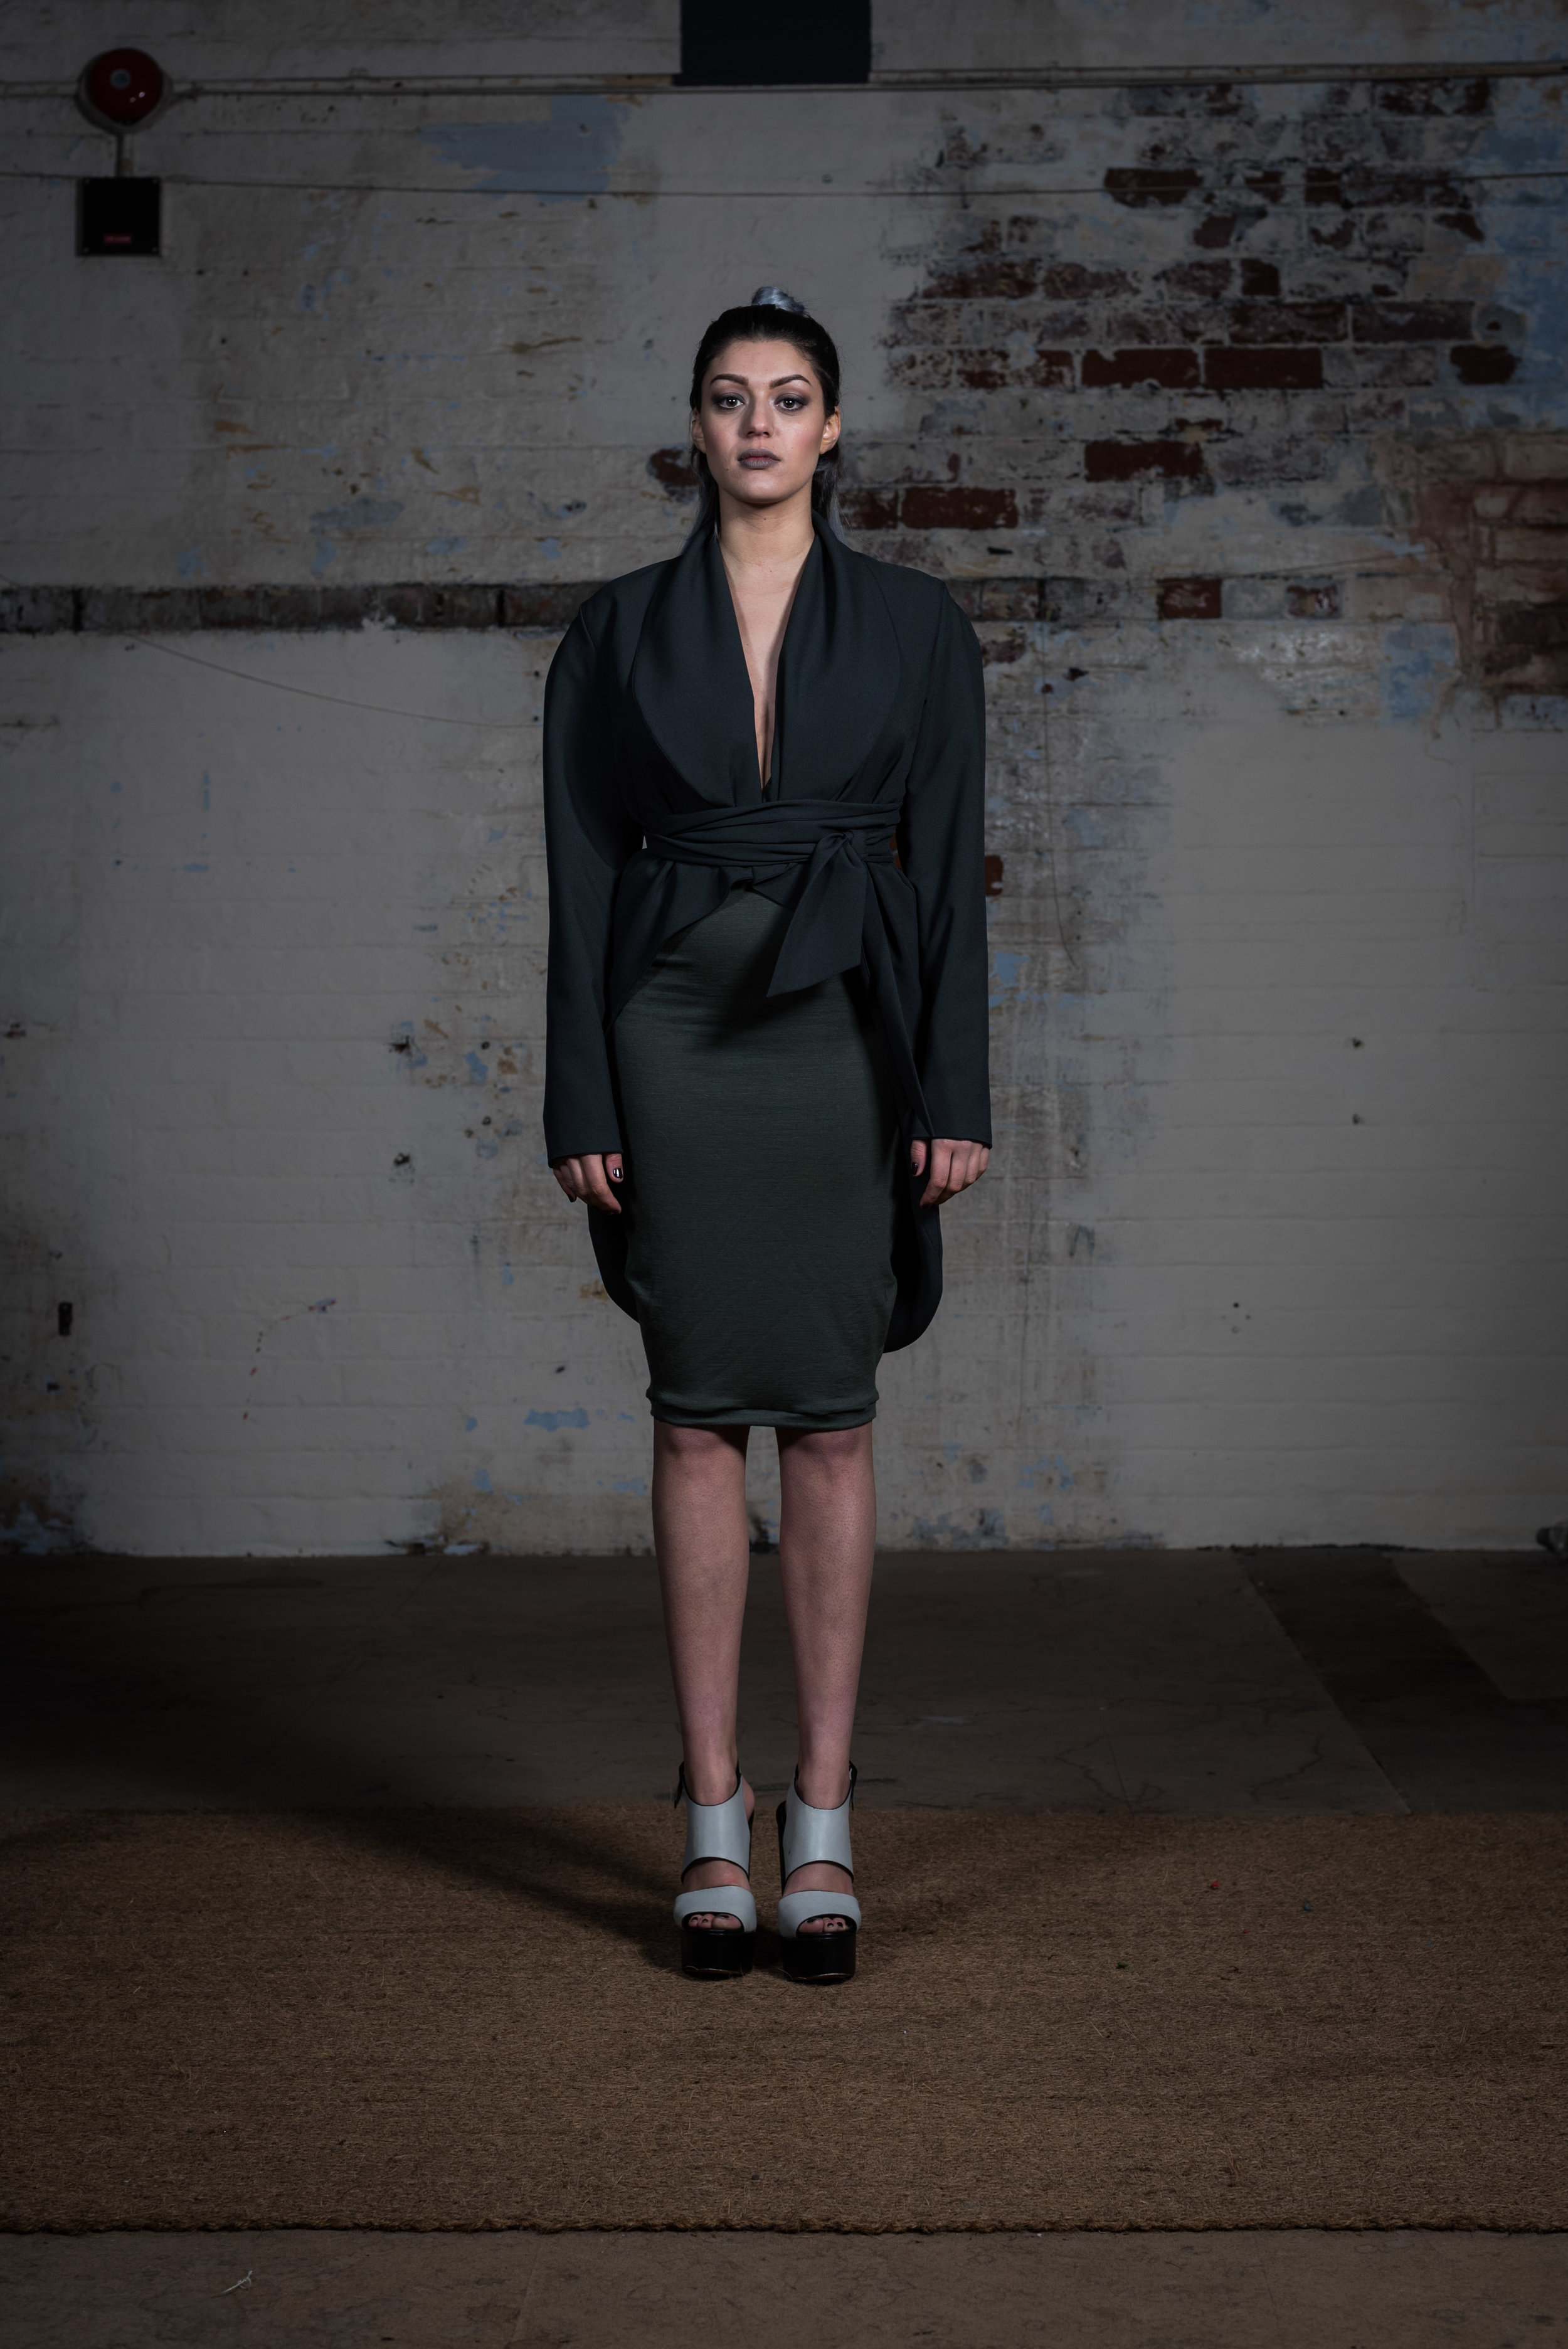 zaramia-ava-zaramiaava-leeds-fashion-designer-ethical-sustainable-yuo-tailored-minimalist-jacket-dress-versatile-drape-skirt-grey-yuko-cowl-dress-styling-location-womenswear-models-photoshoot-15